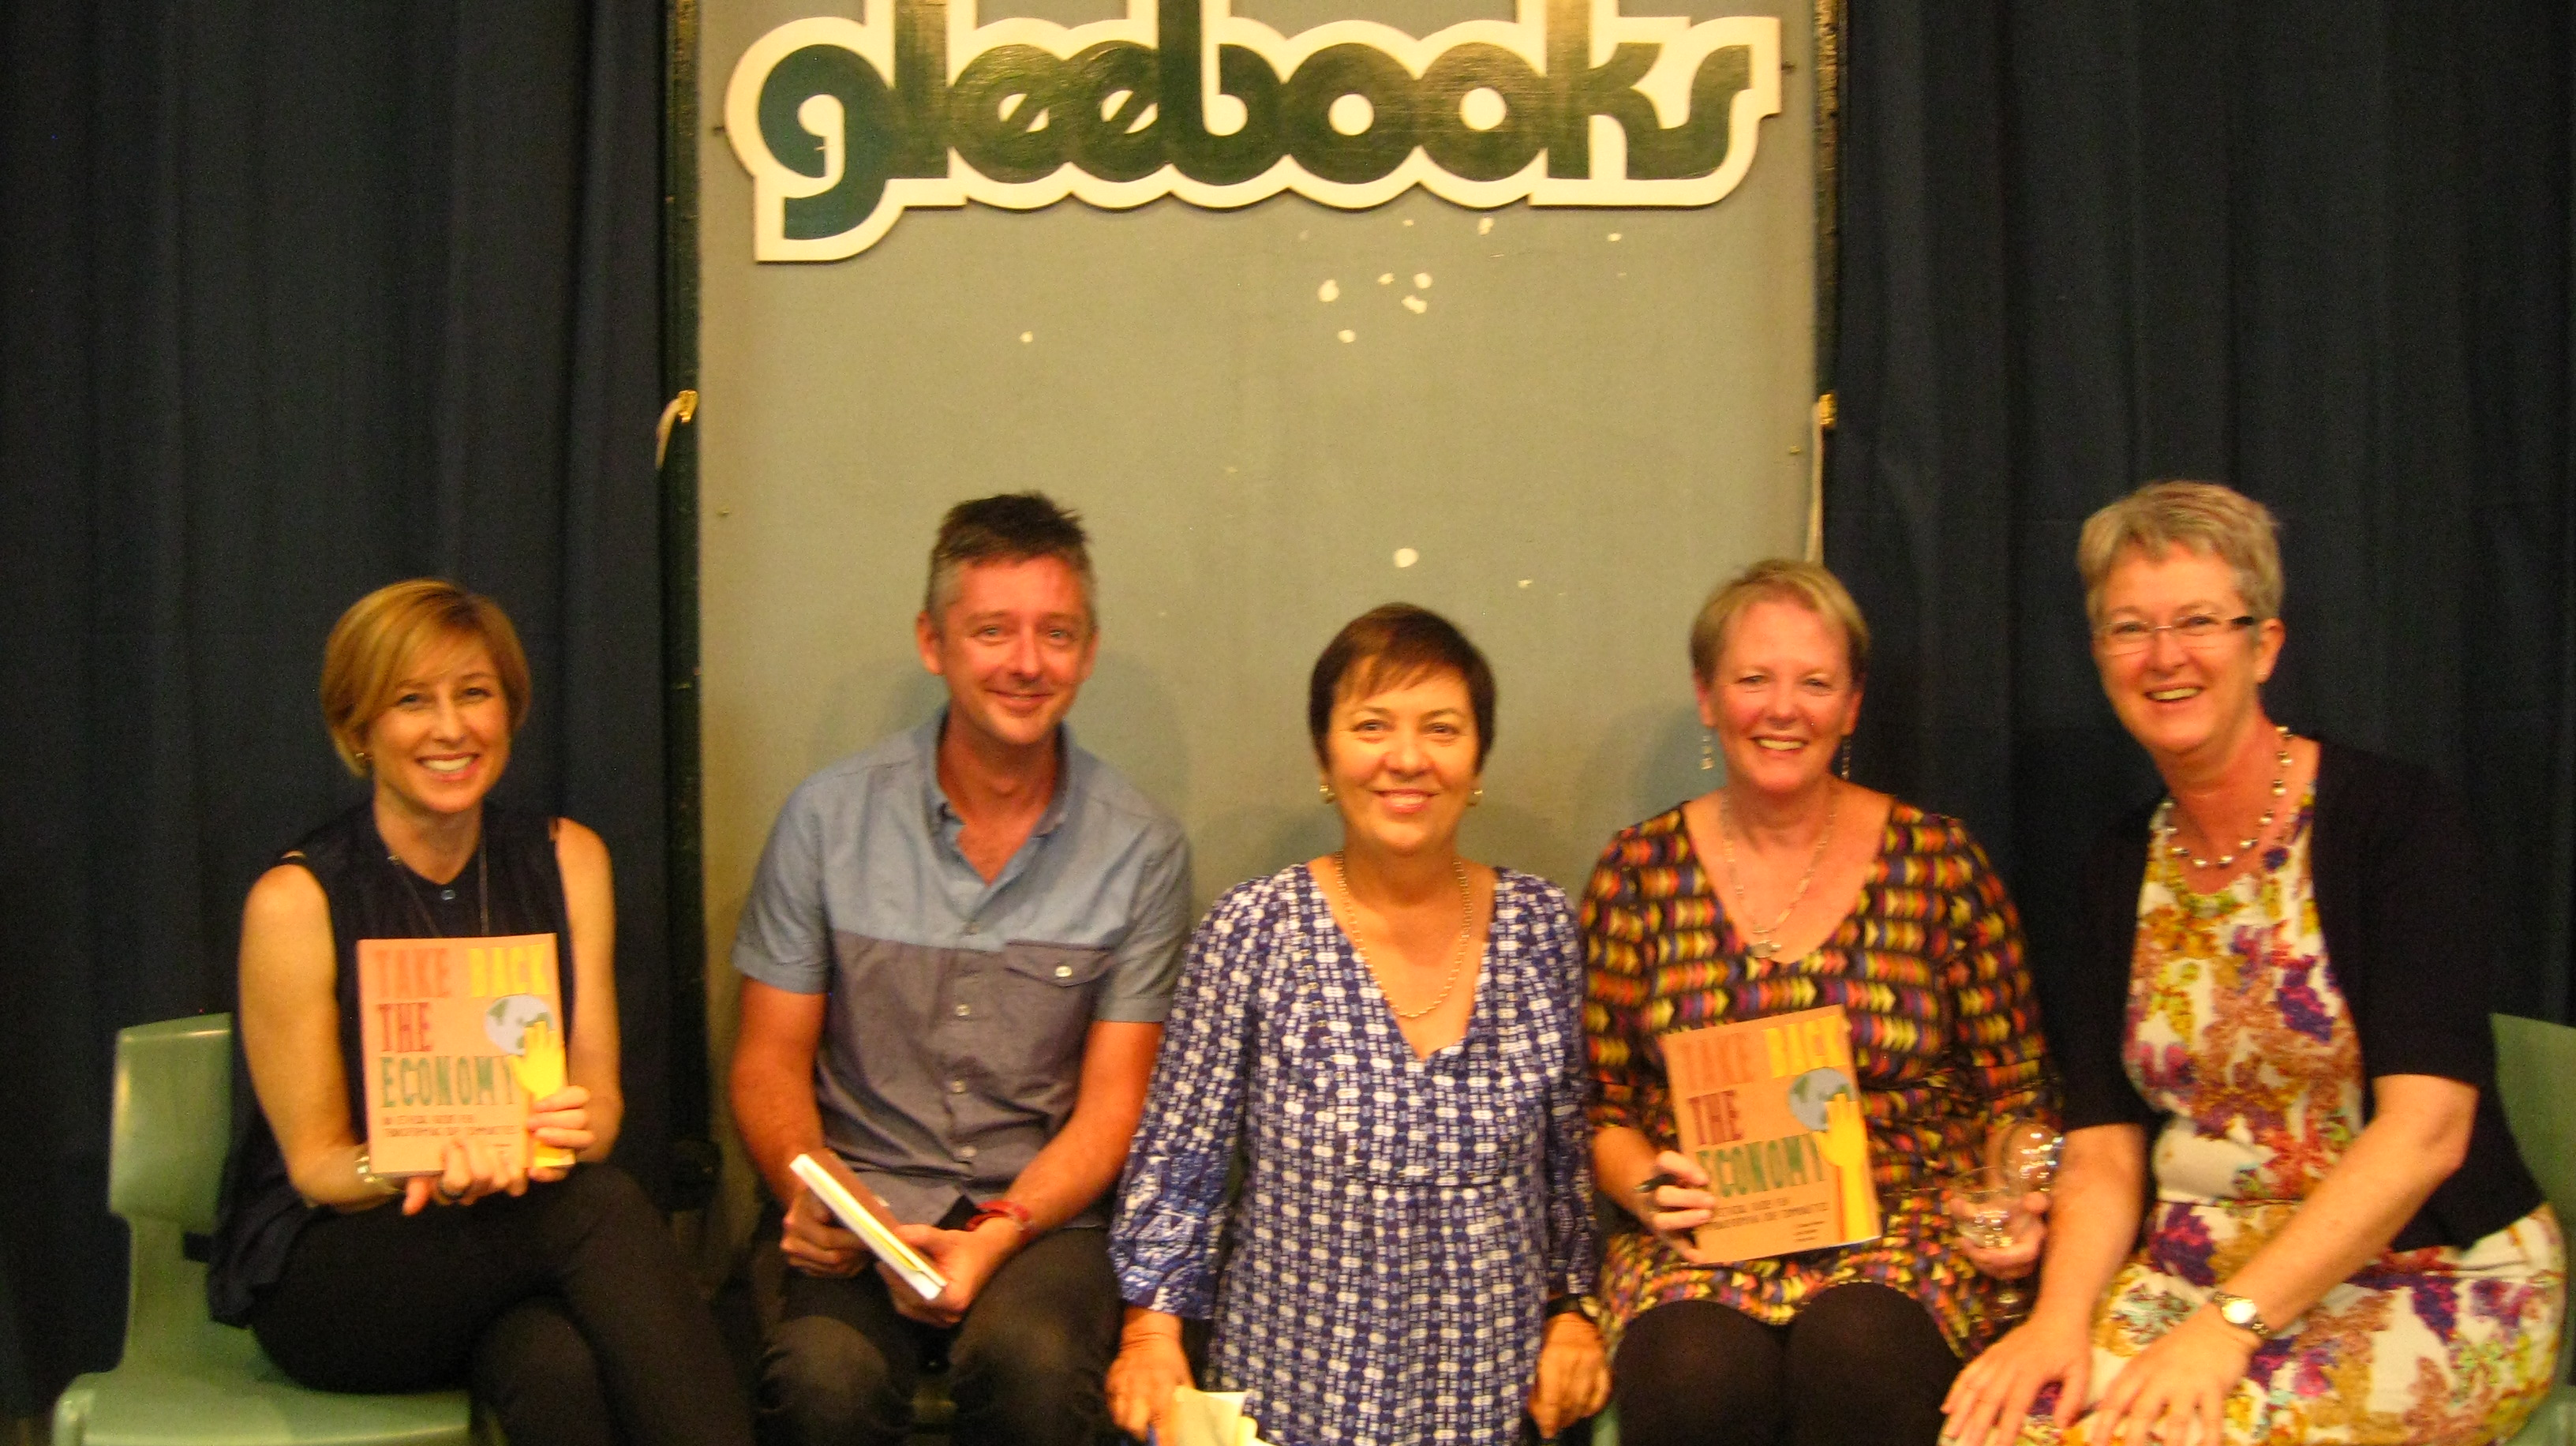 Gibson_Take_Back_Economy_Booklaunch_Gleebooks.jpg